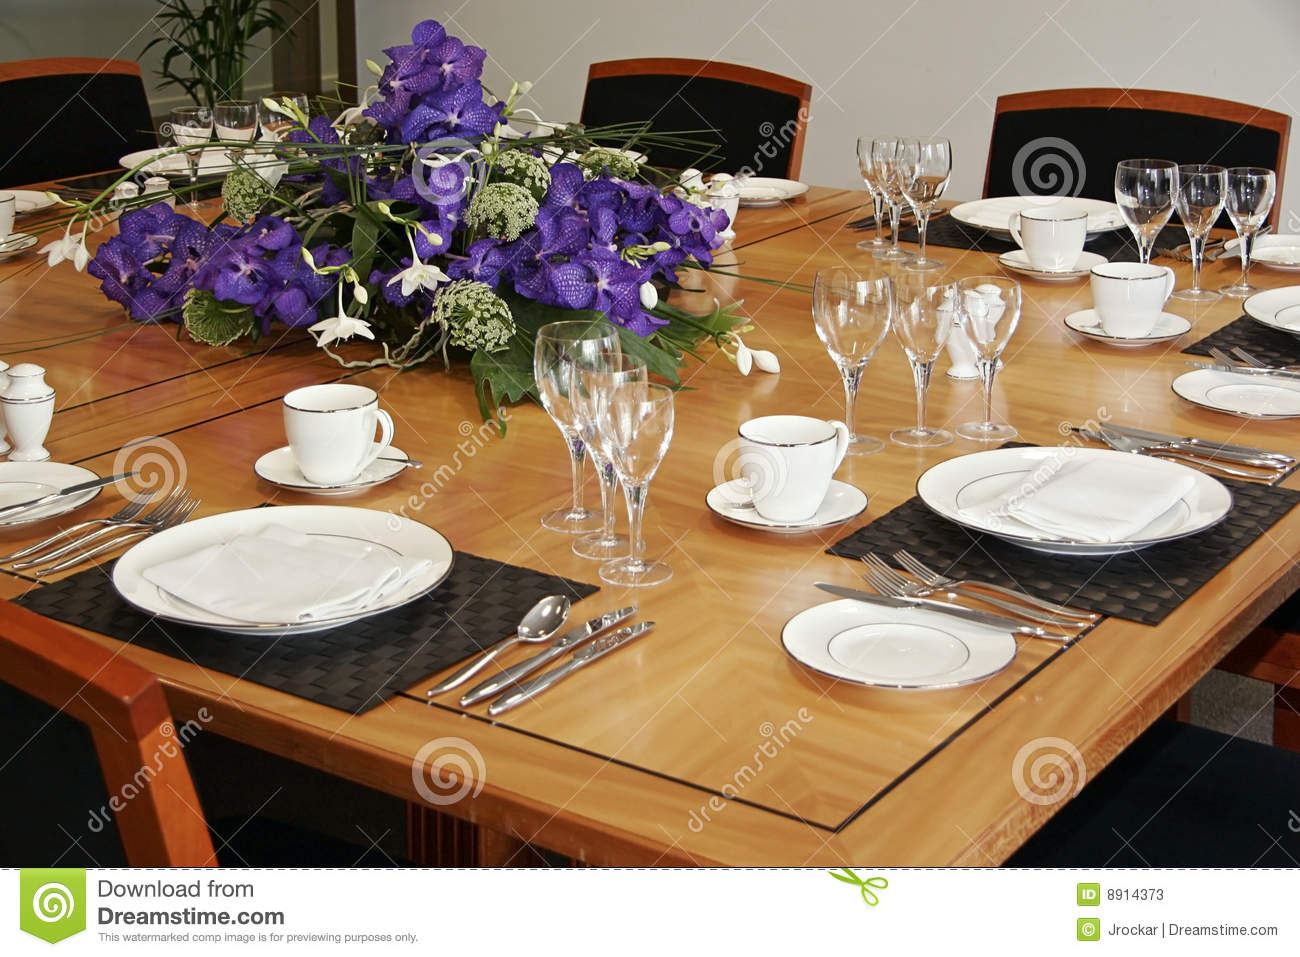 restaurant table setup with cut flowers stock photos image 8914373. Black Bedroom Furniture Sets. Home Design Ideas